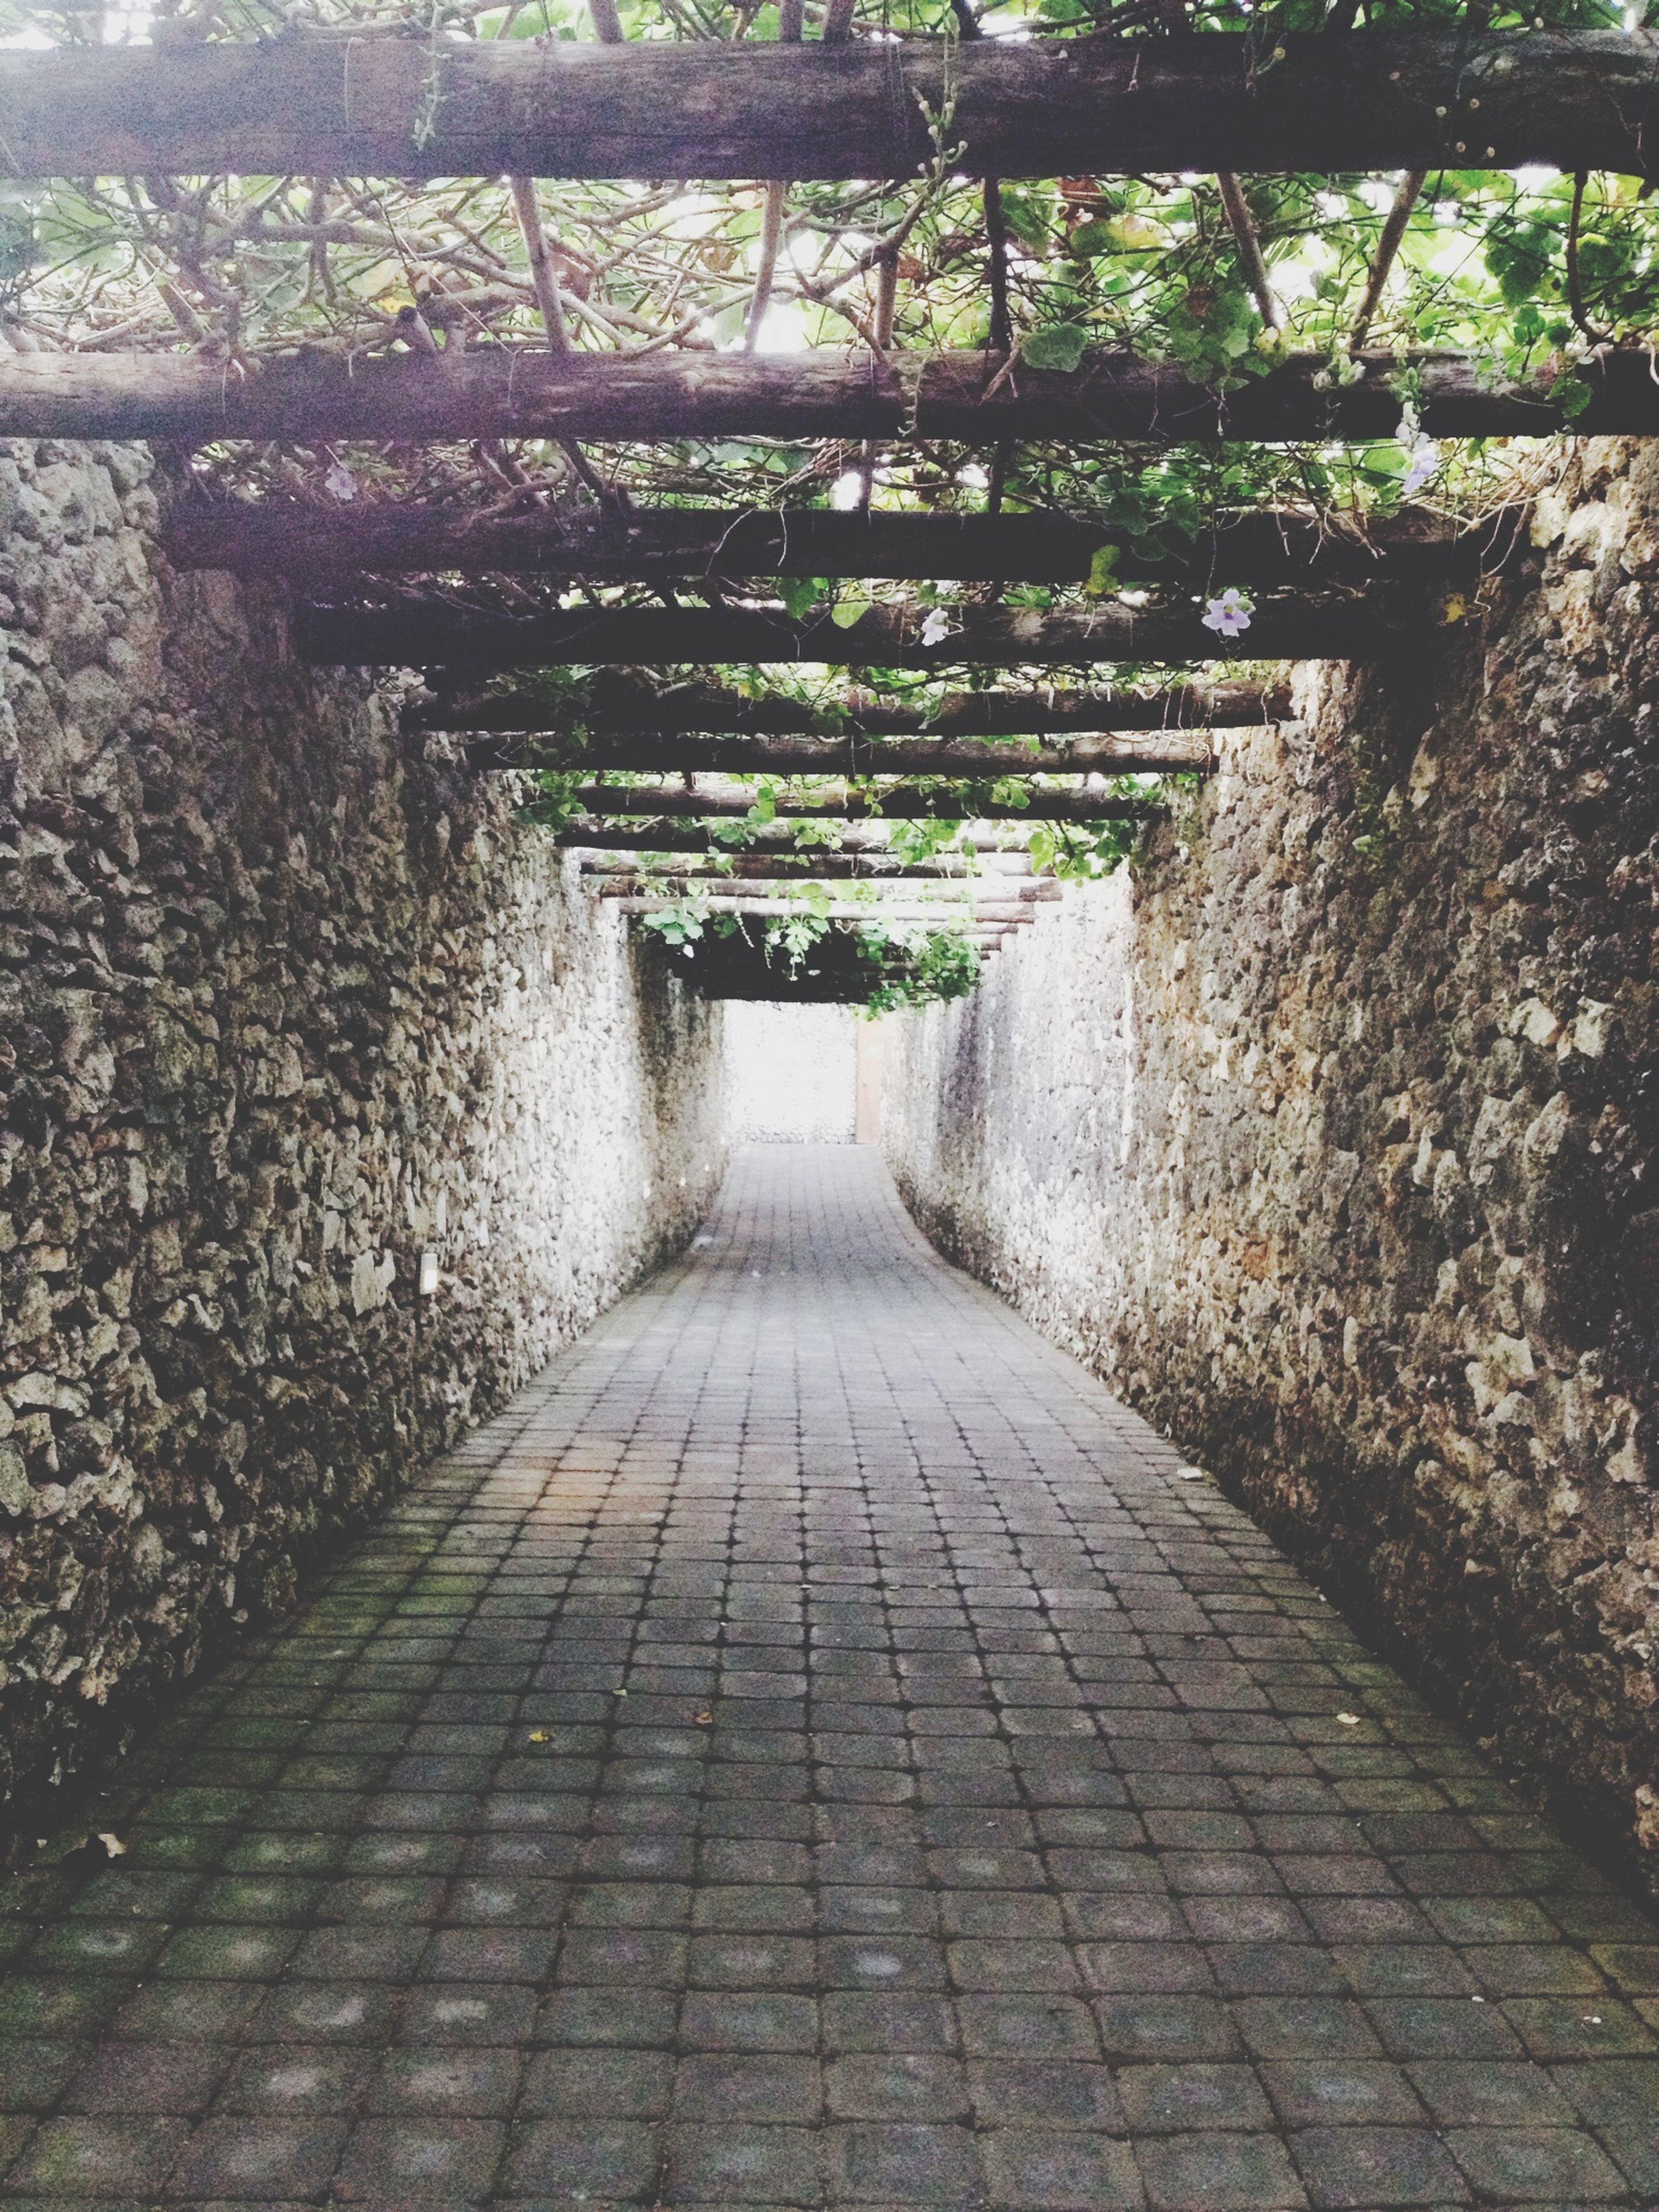 the way forward, tree, footpath, diminishing perspective, walkway, growth, pathway, vanishing point, green color, plant, narrow, cobblestone, nature, tranquility, built structure, park - man made space, in a row, day, sunlight, outdoors